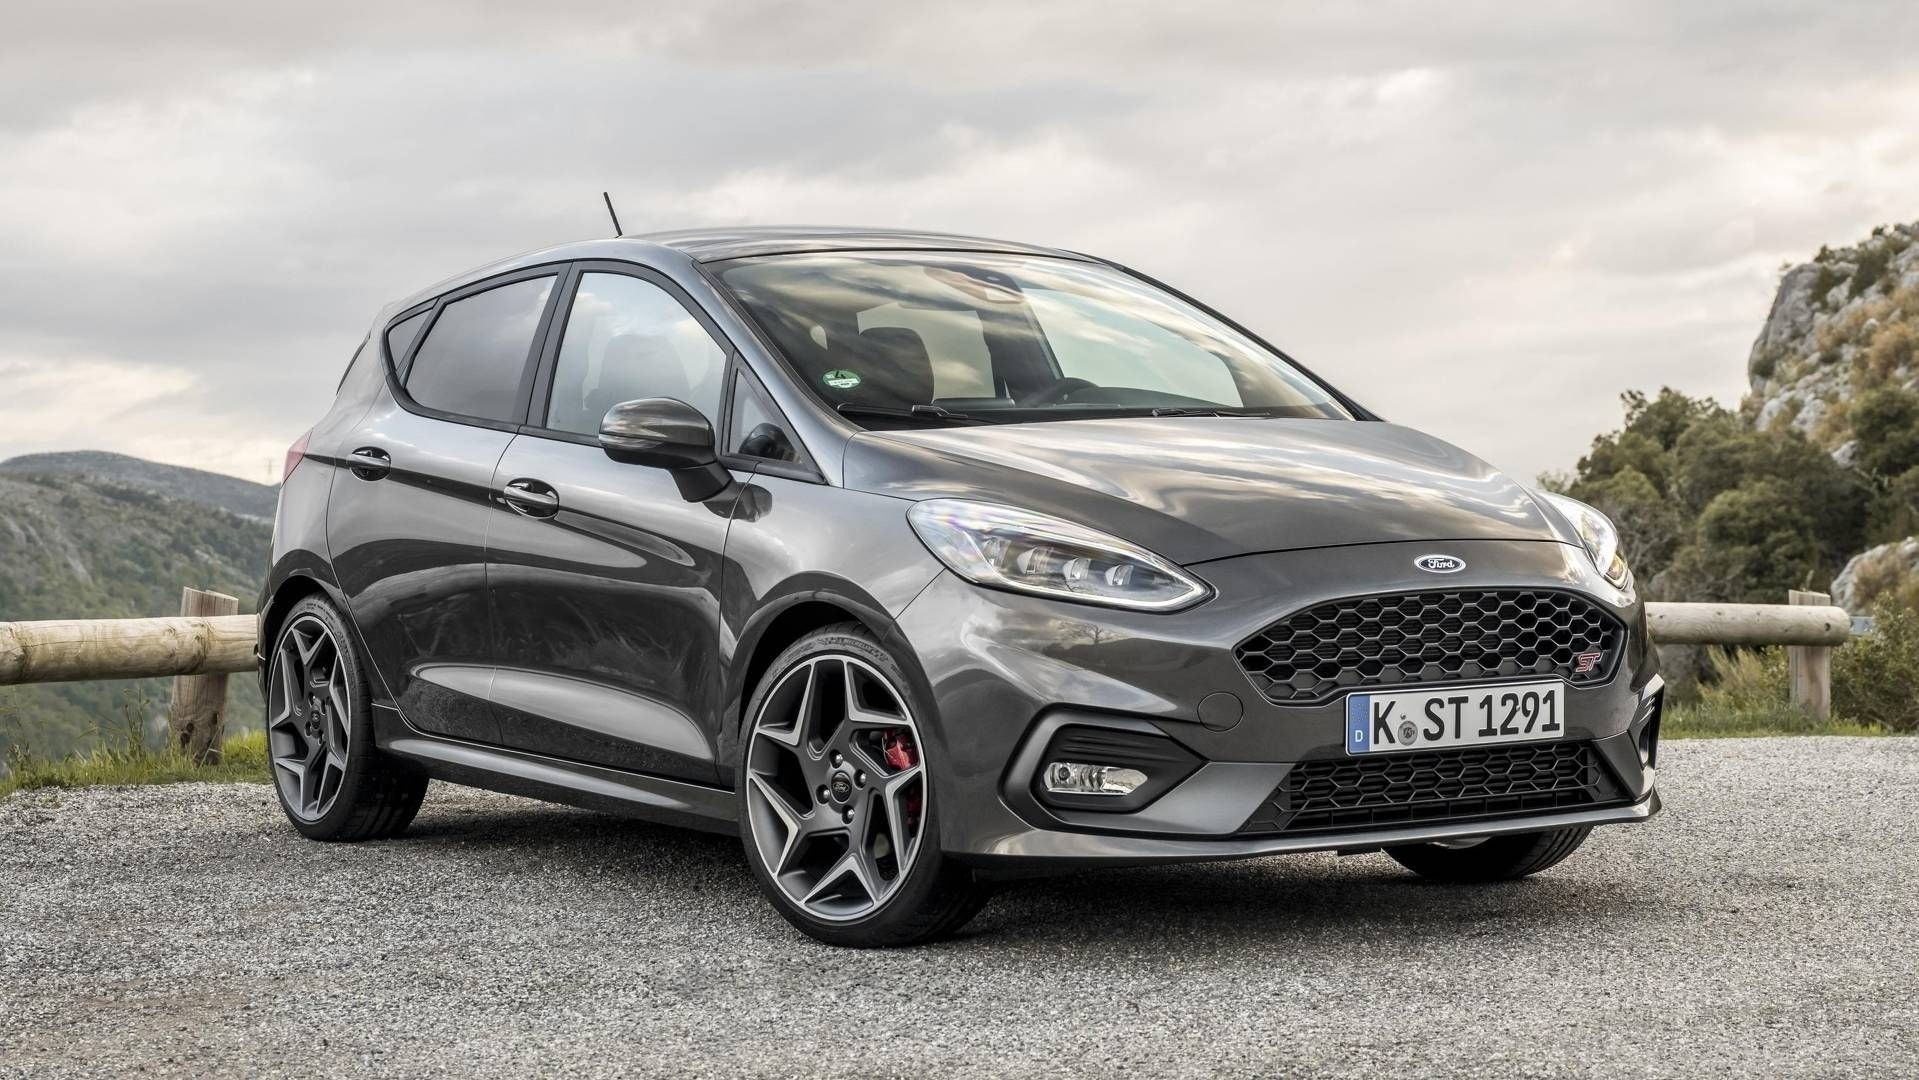 2020 Ford Fiesta St Rs Review And Specs Ford Fiesta St Ford